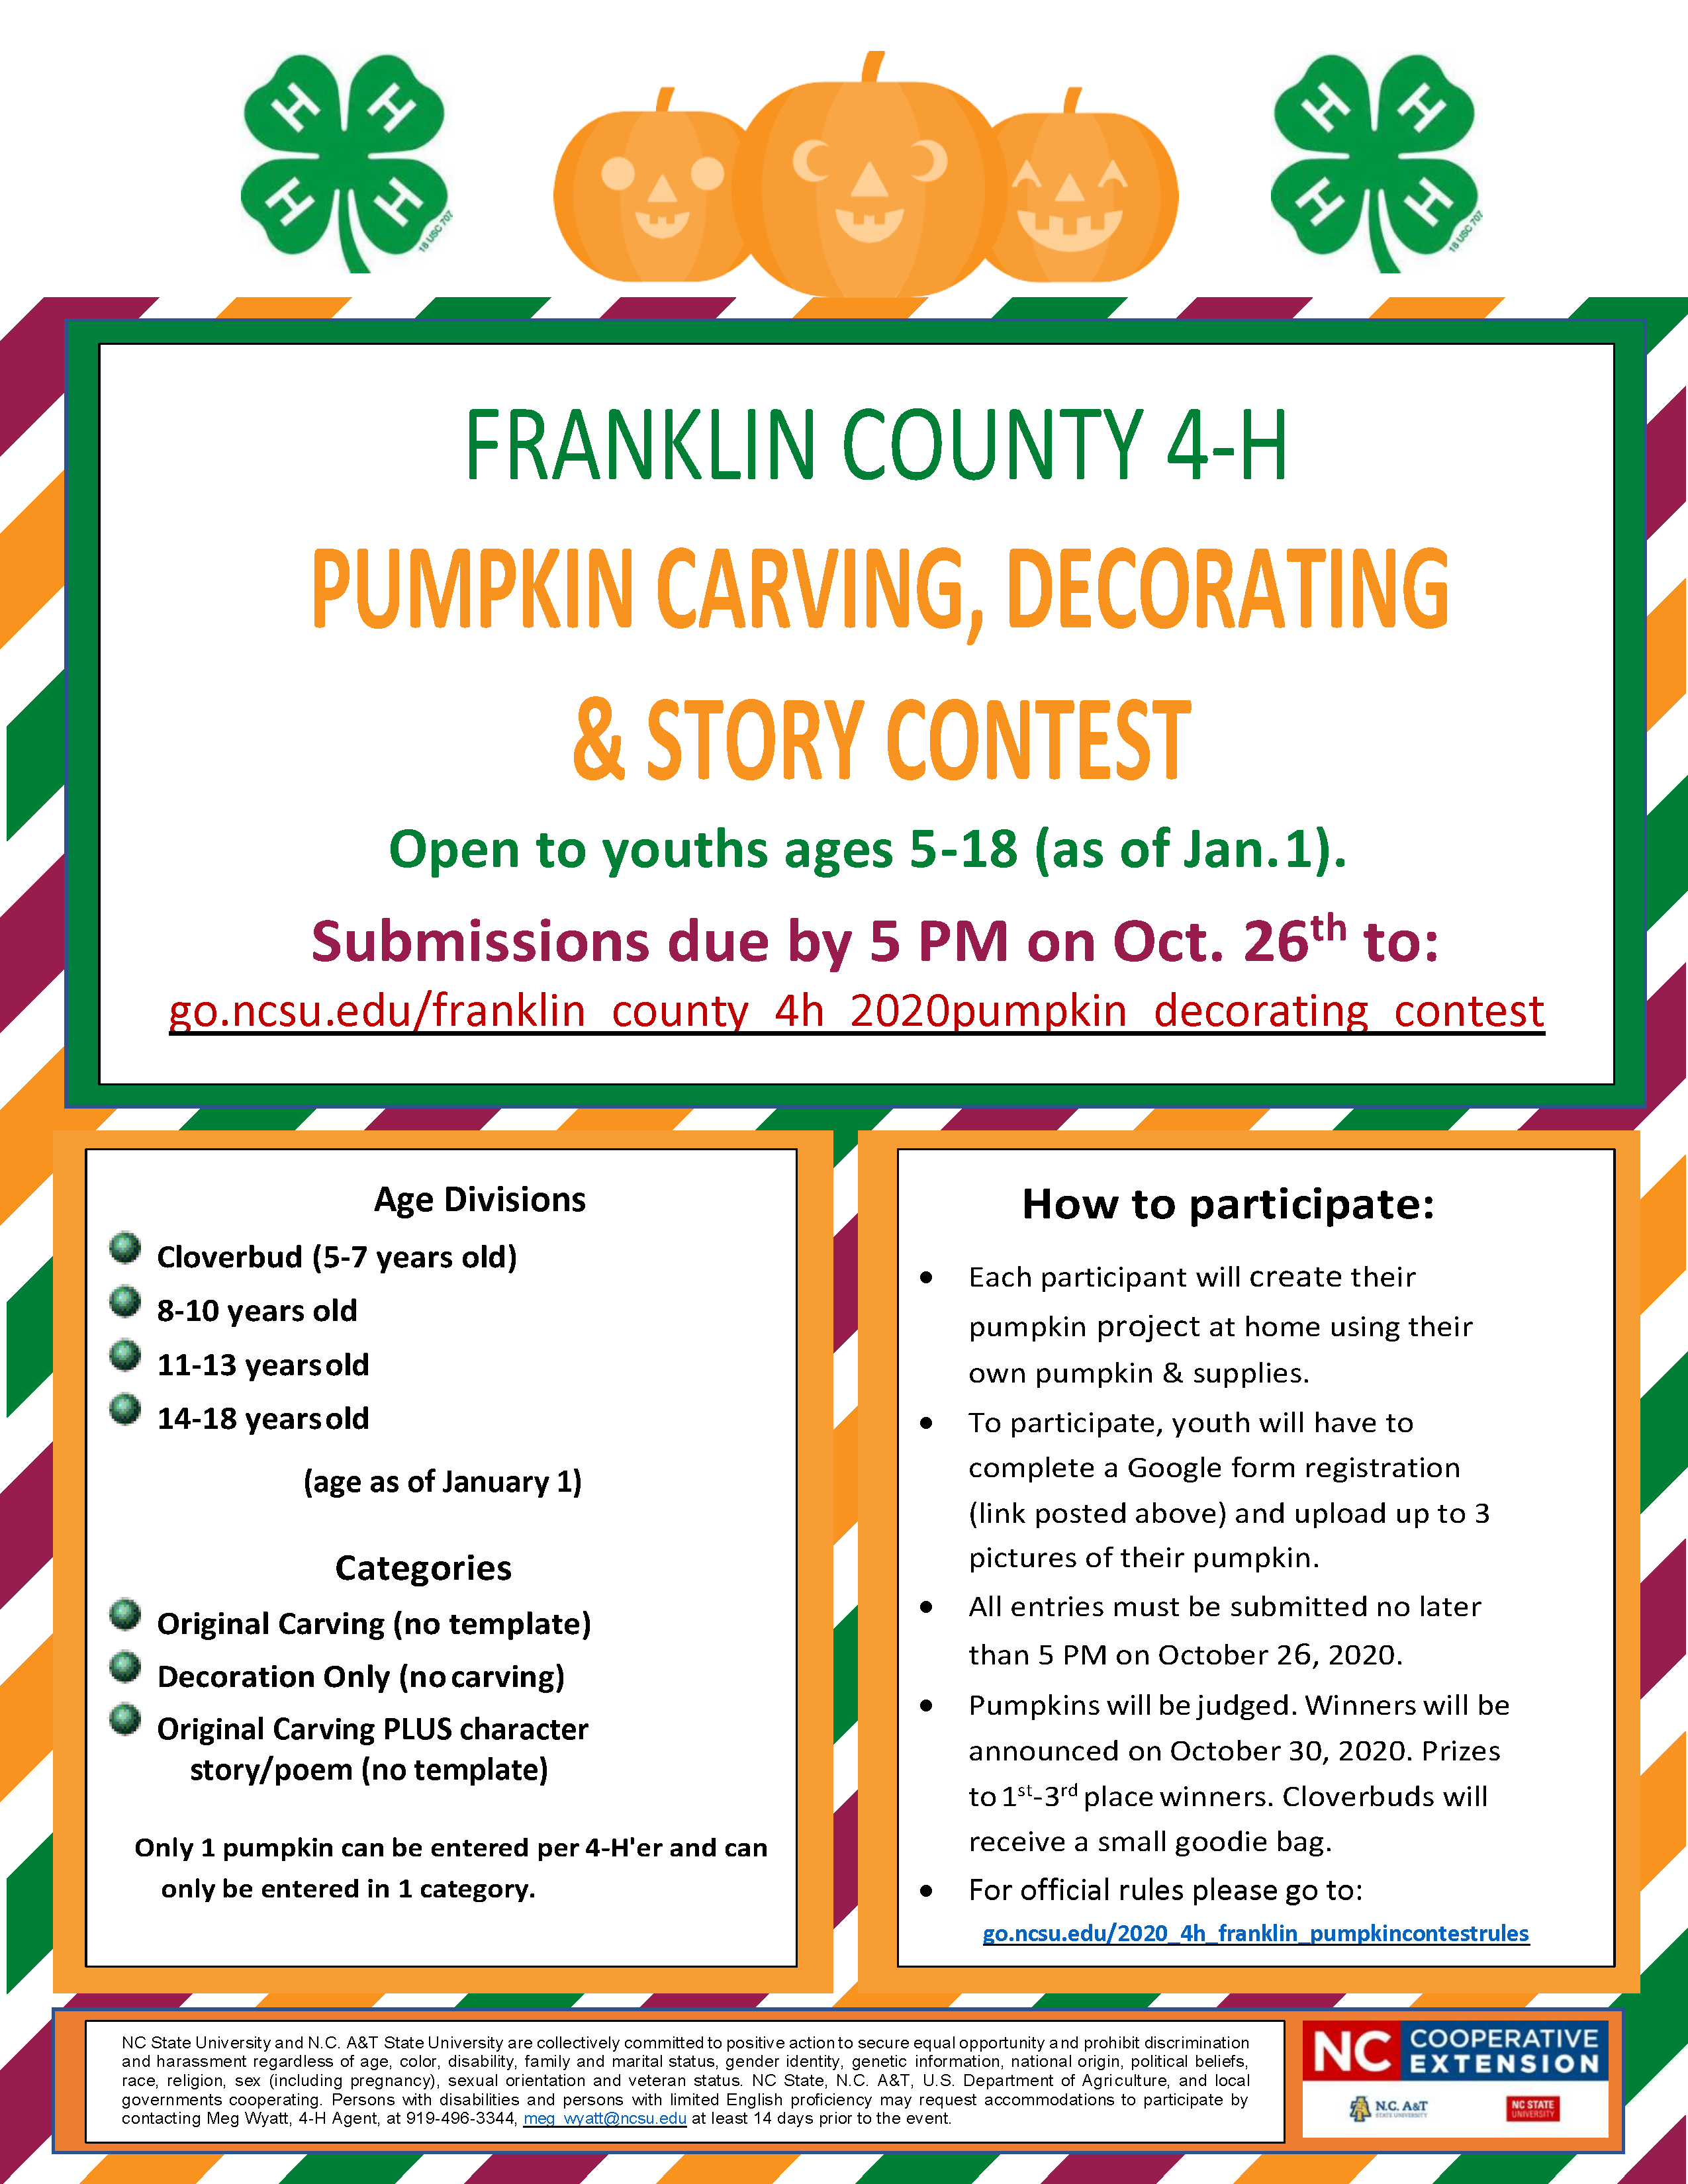 Franklin County 4H 2020 Pumpkin Carving, Decorating and Story Contest flyer